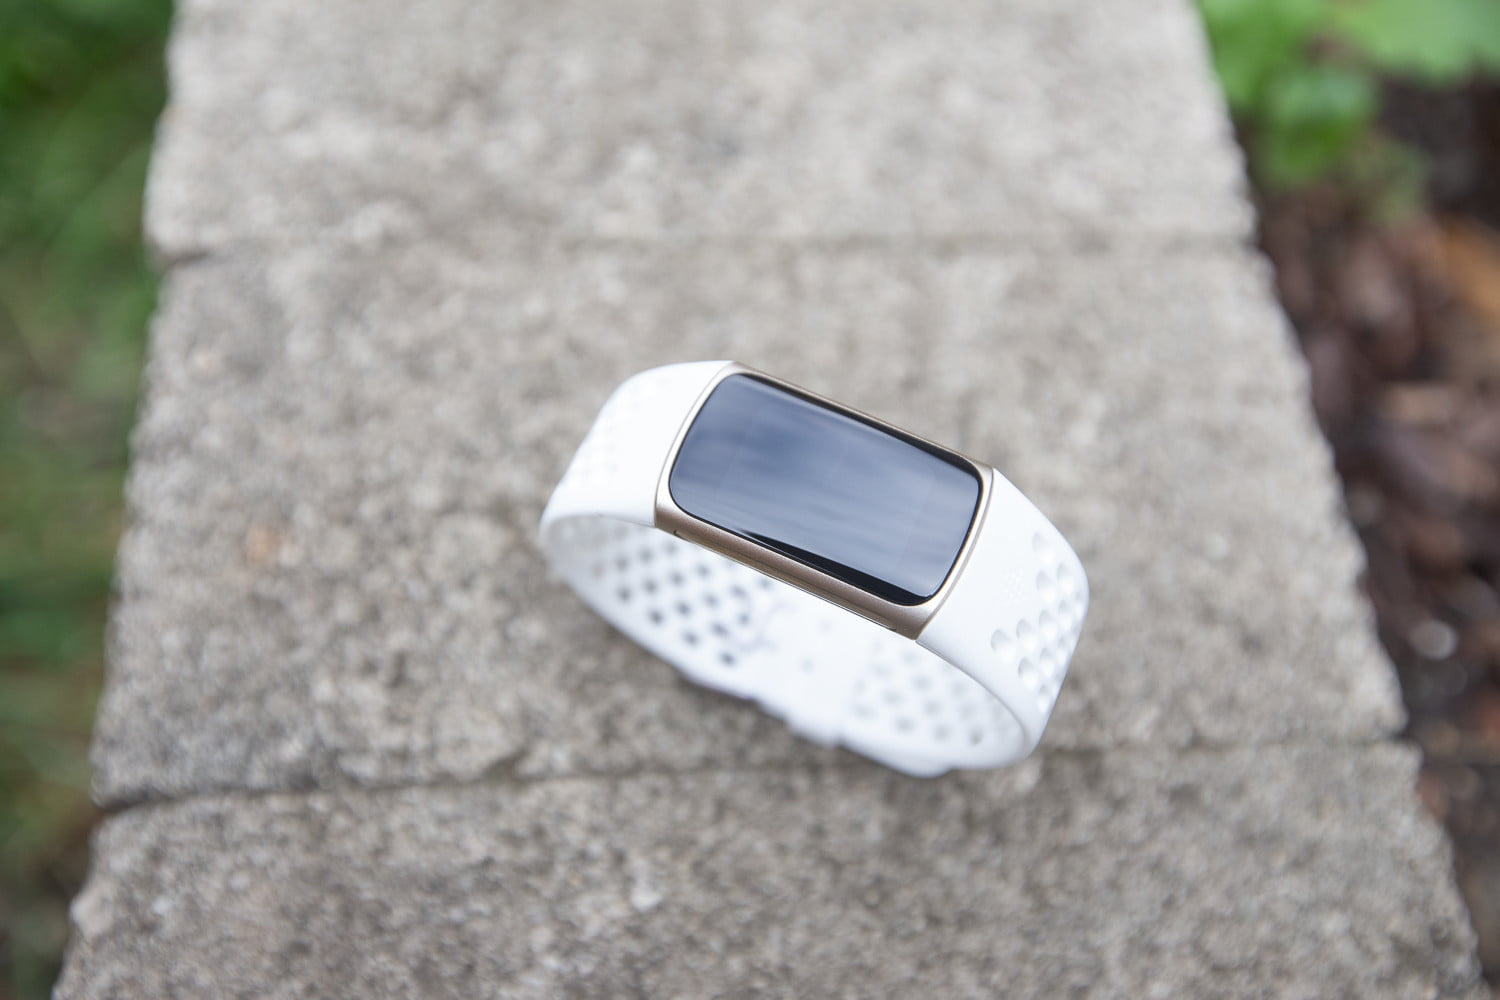 Top-down view of a Fitbit Charge 5 with a black screen.